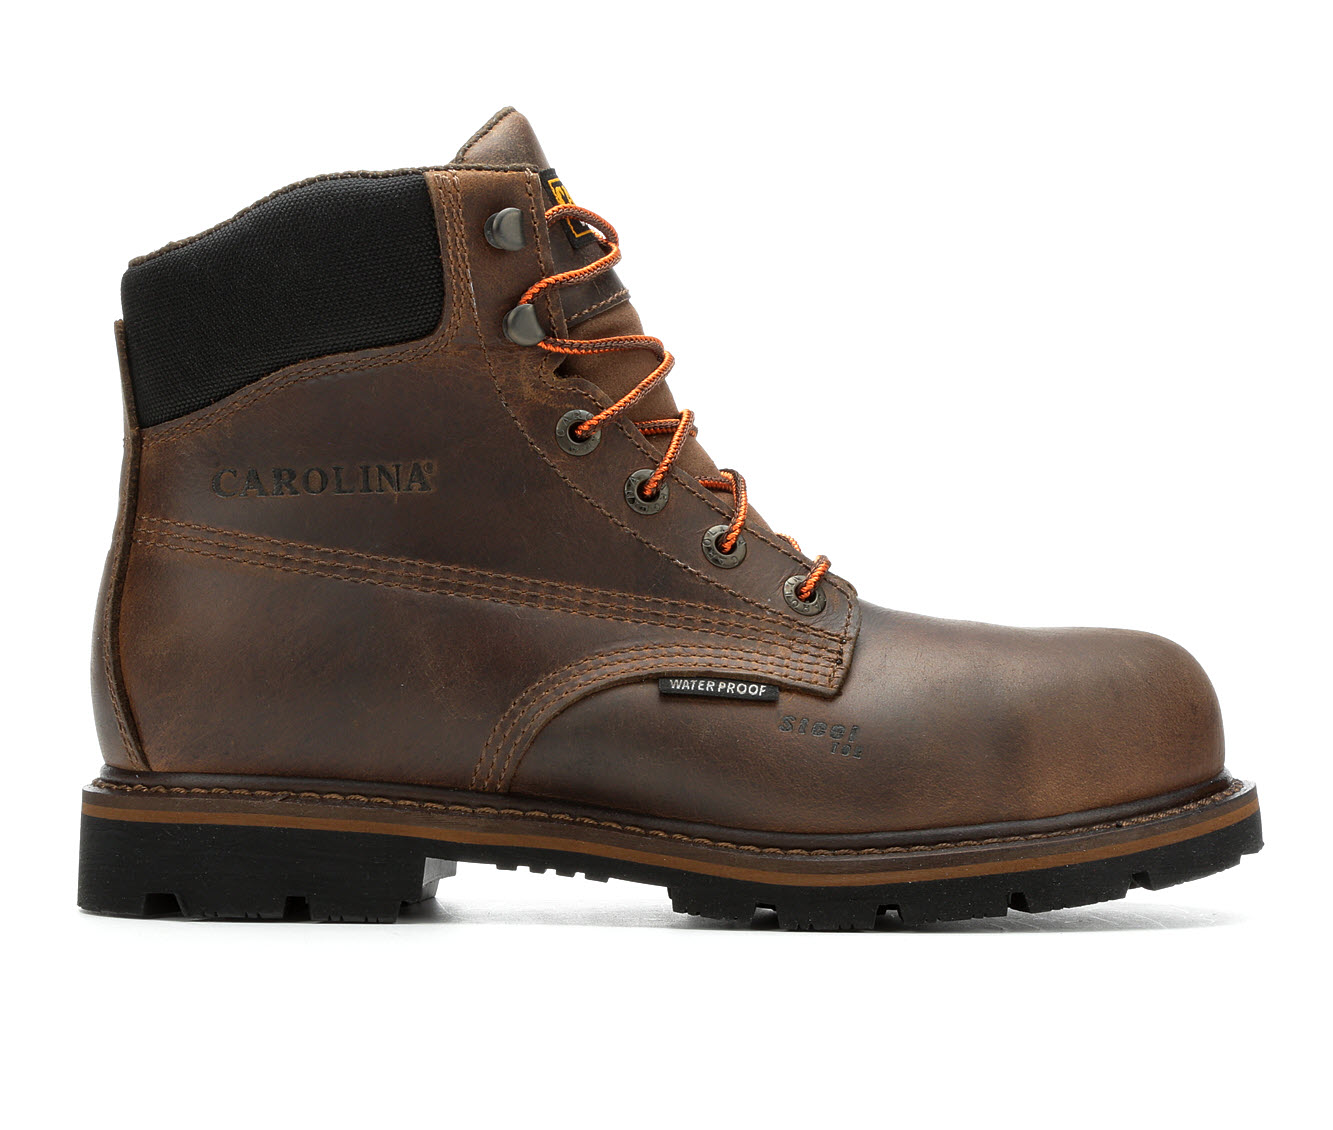 Carolina Boots CA8889 6 Inch Steel Toe Men's Boots (Brown Leather)